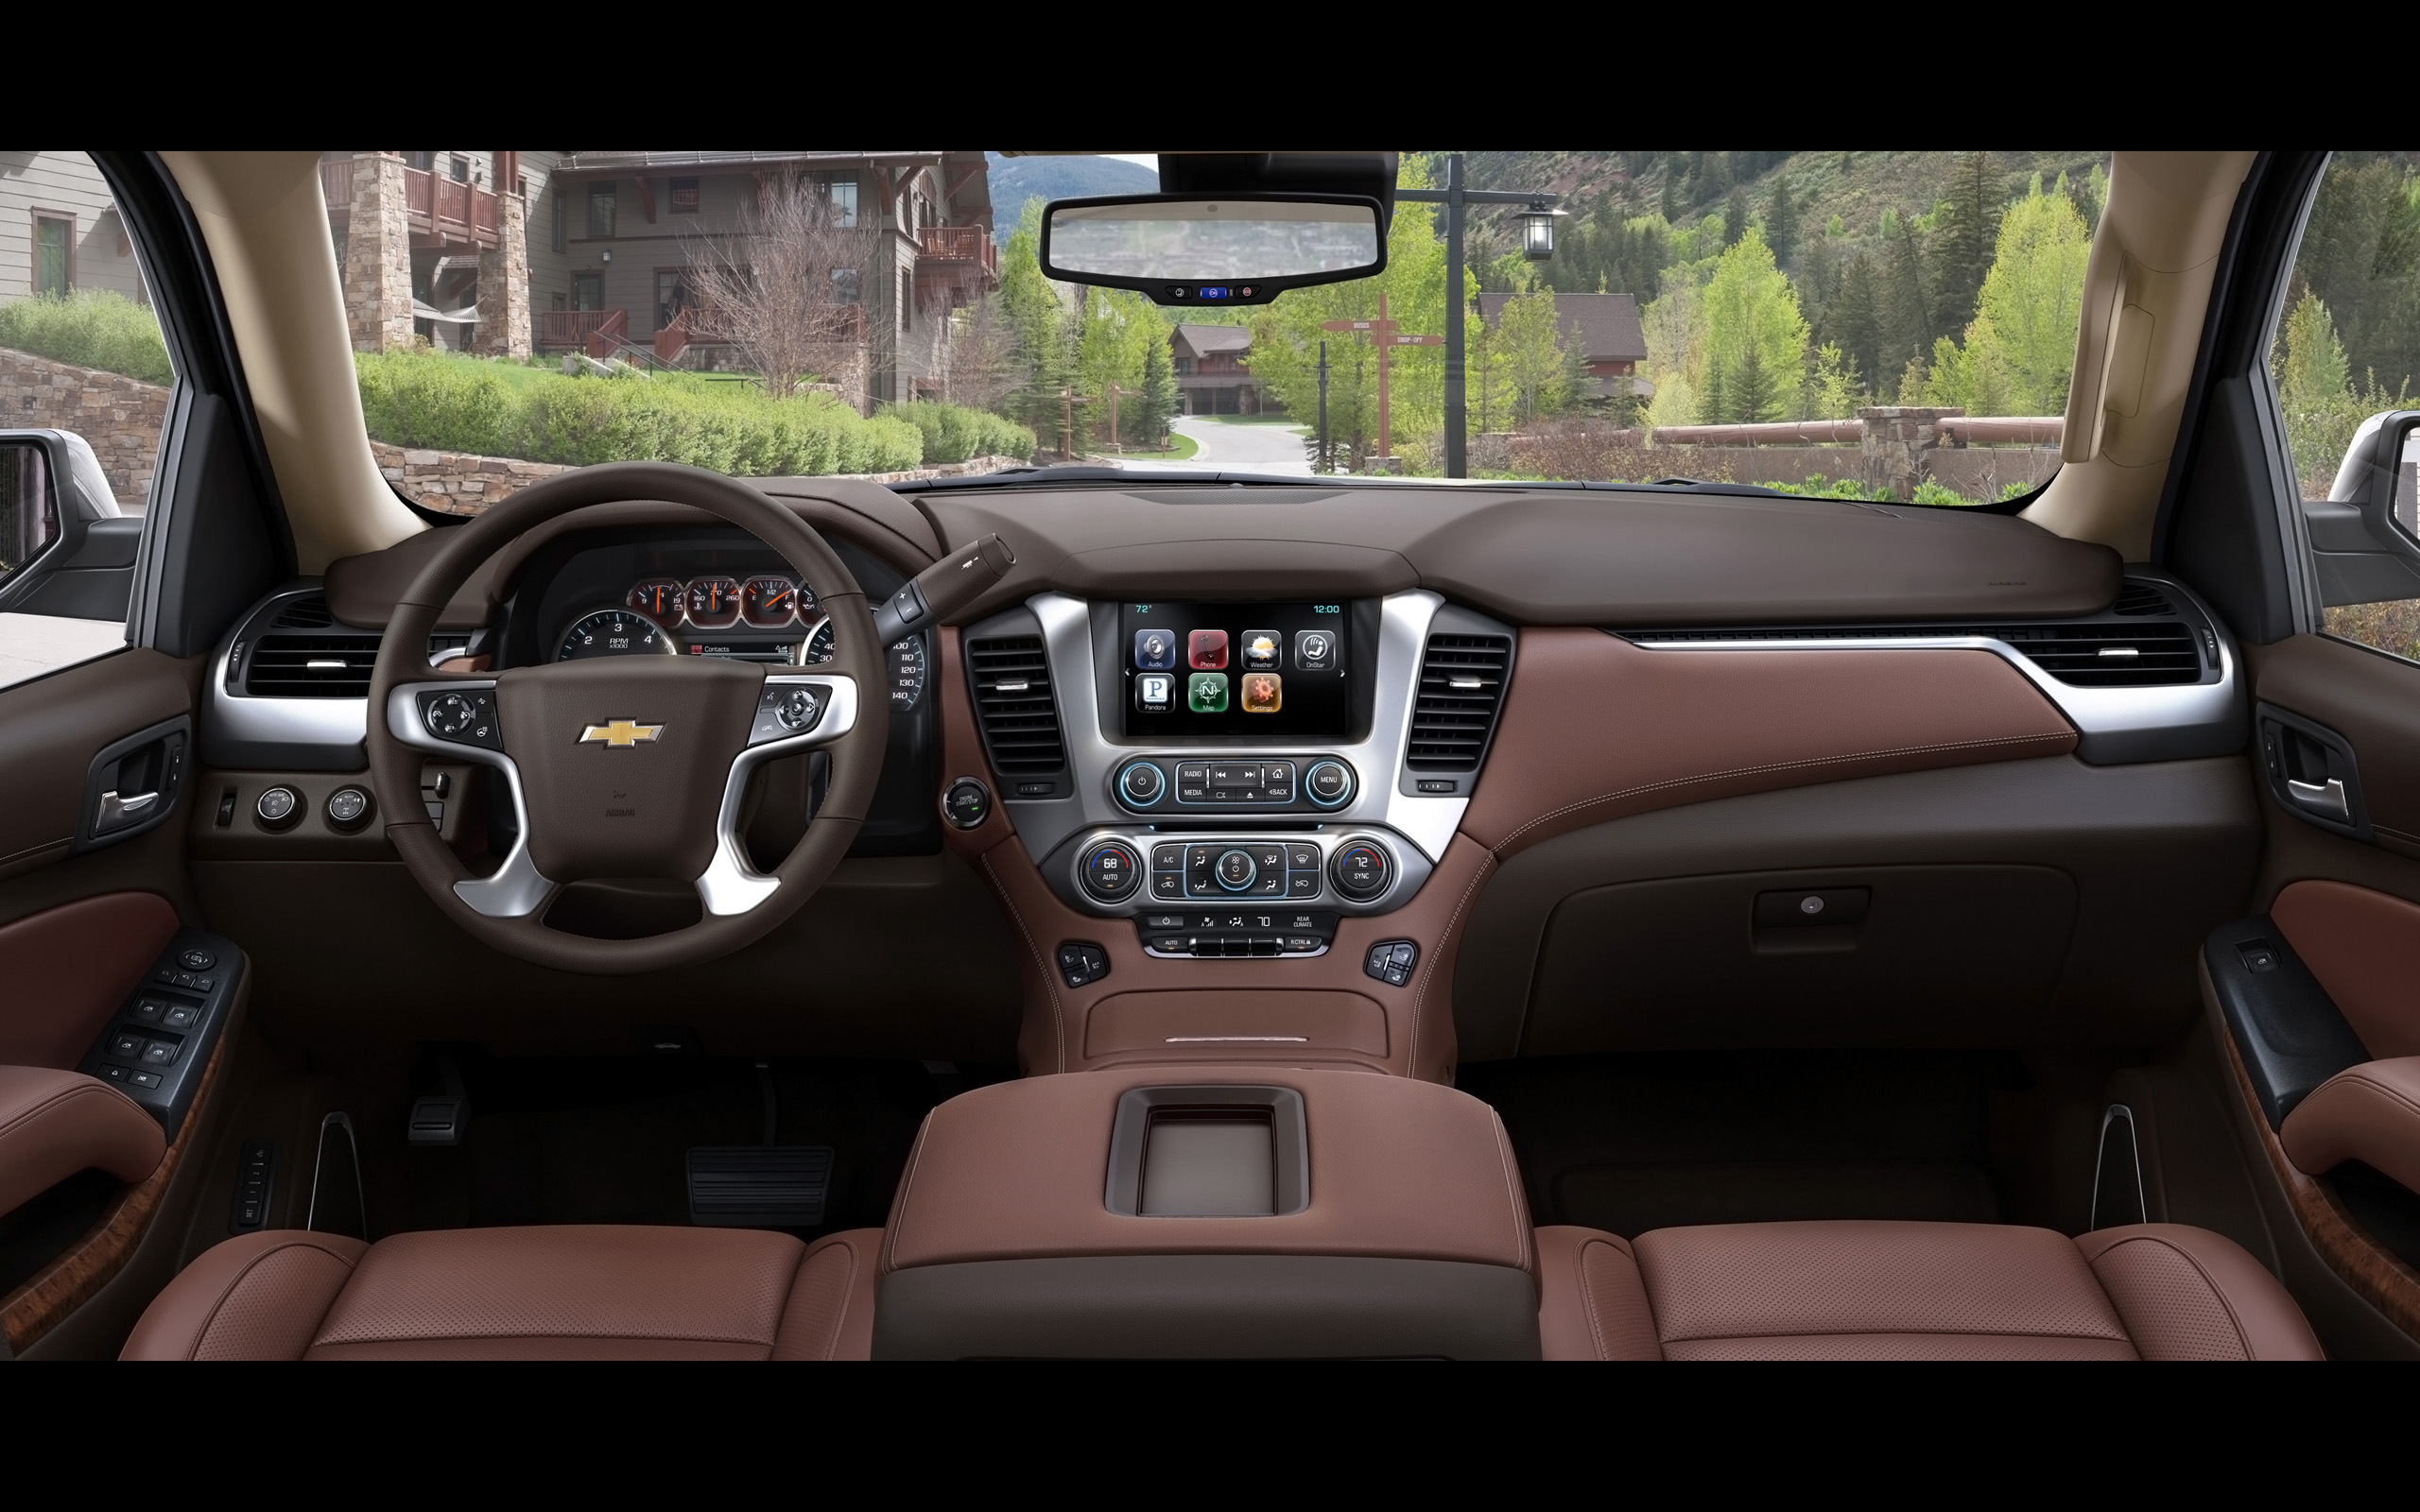 2015 chevrolet tahoe suv suburban interior h wallpaper 2560x1600 149400 wallpaperup. Black Bedroom Furniture Sets. Home Design Ideas